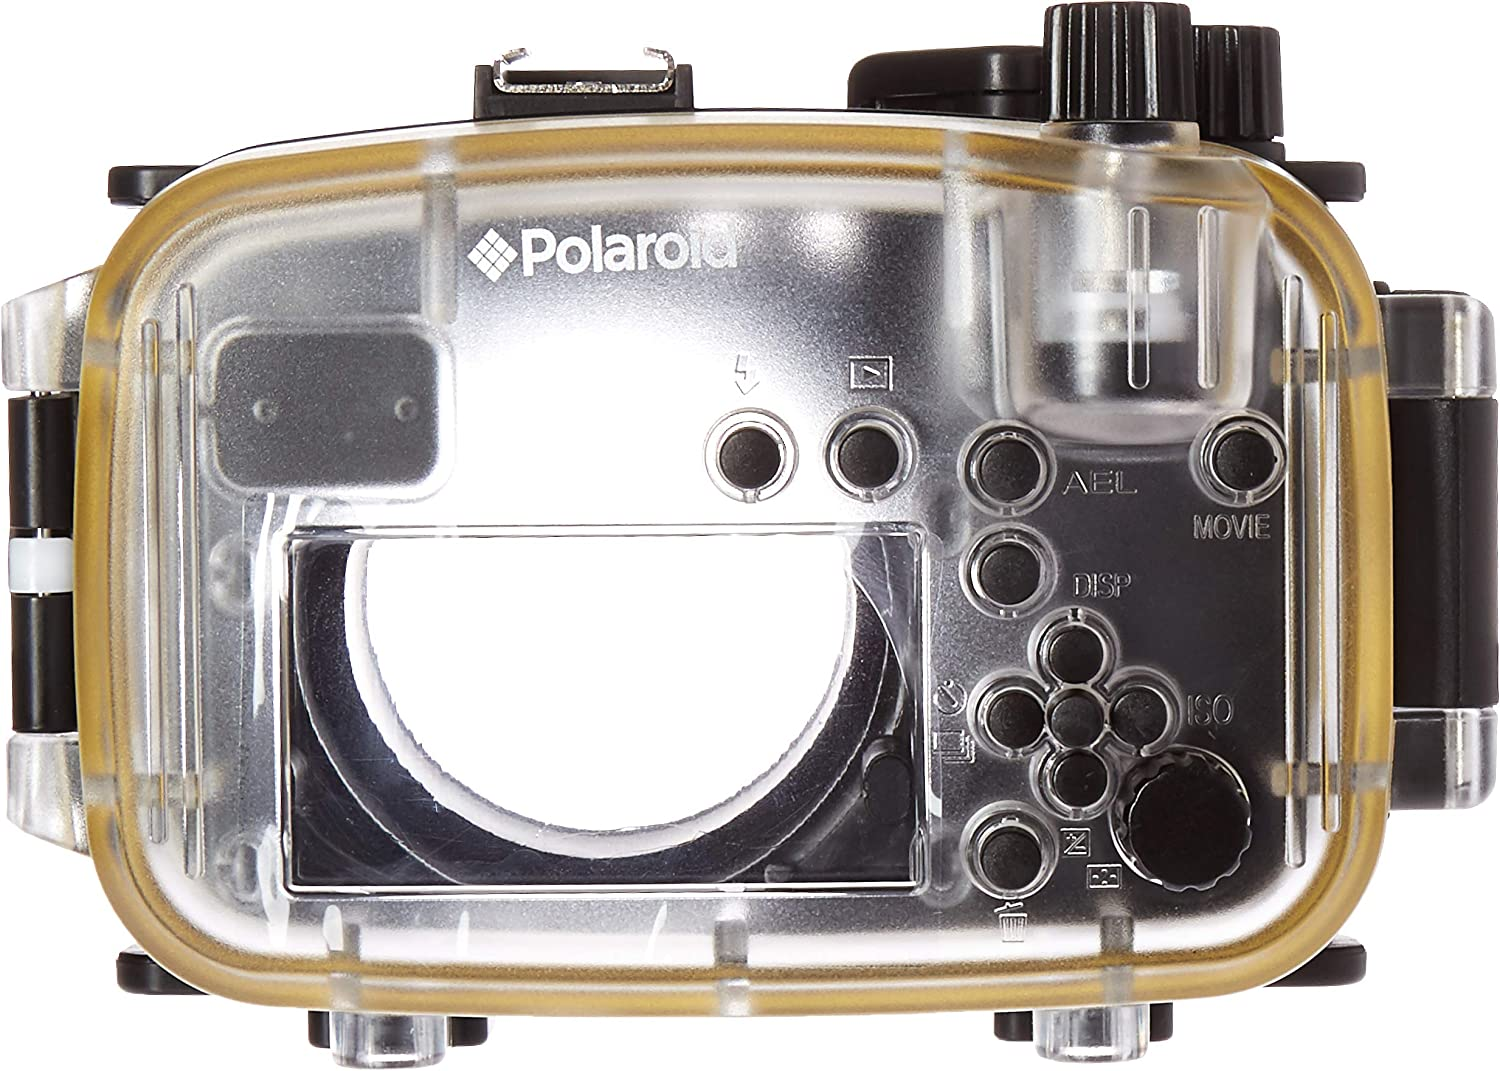 Polaroid SLR Dive Rated Waterproof Underwater Housing Case for The ...